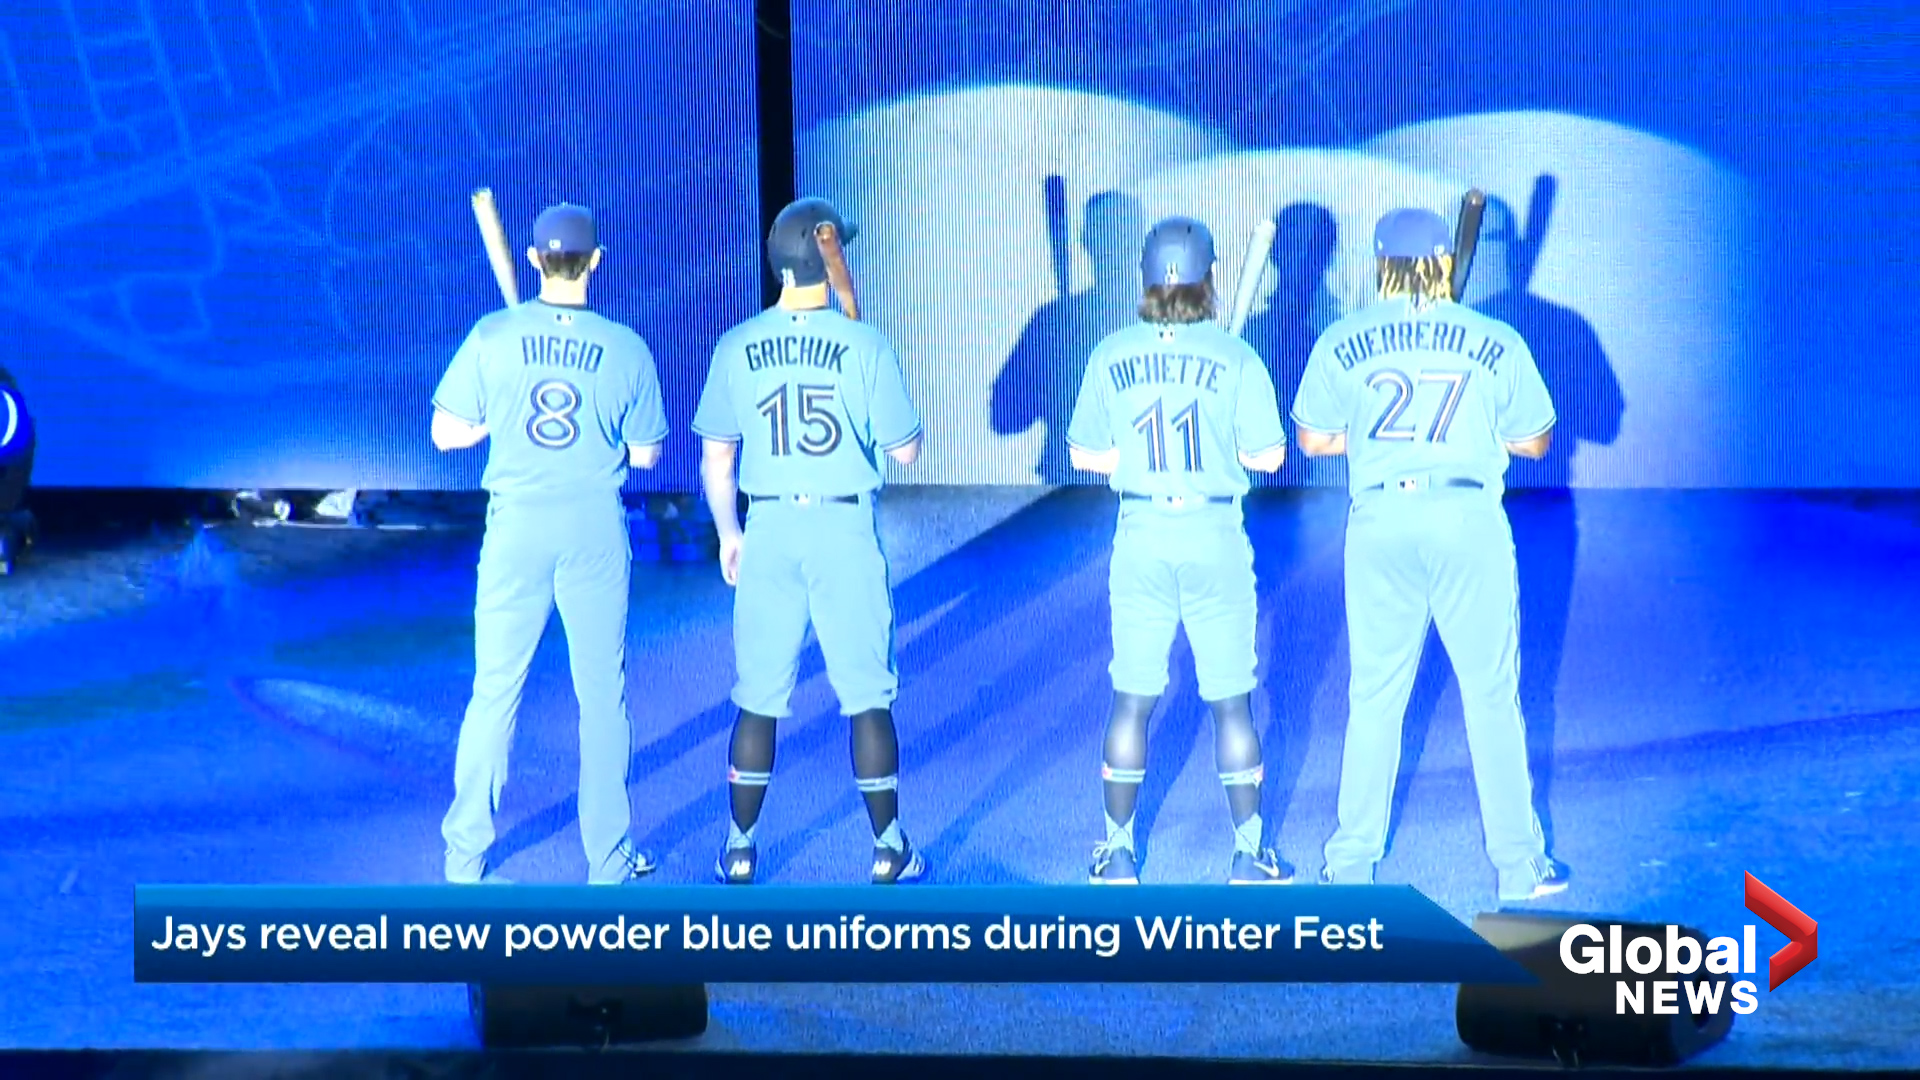 Jays unveil 'throwback' uniforms in powder blue during 3rd annual Winter Fest